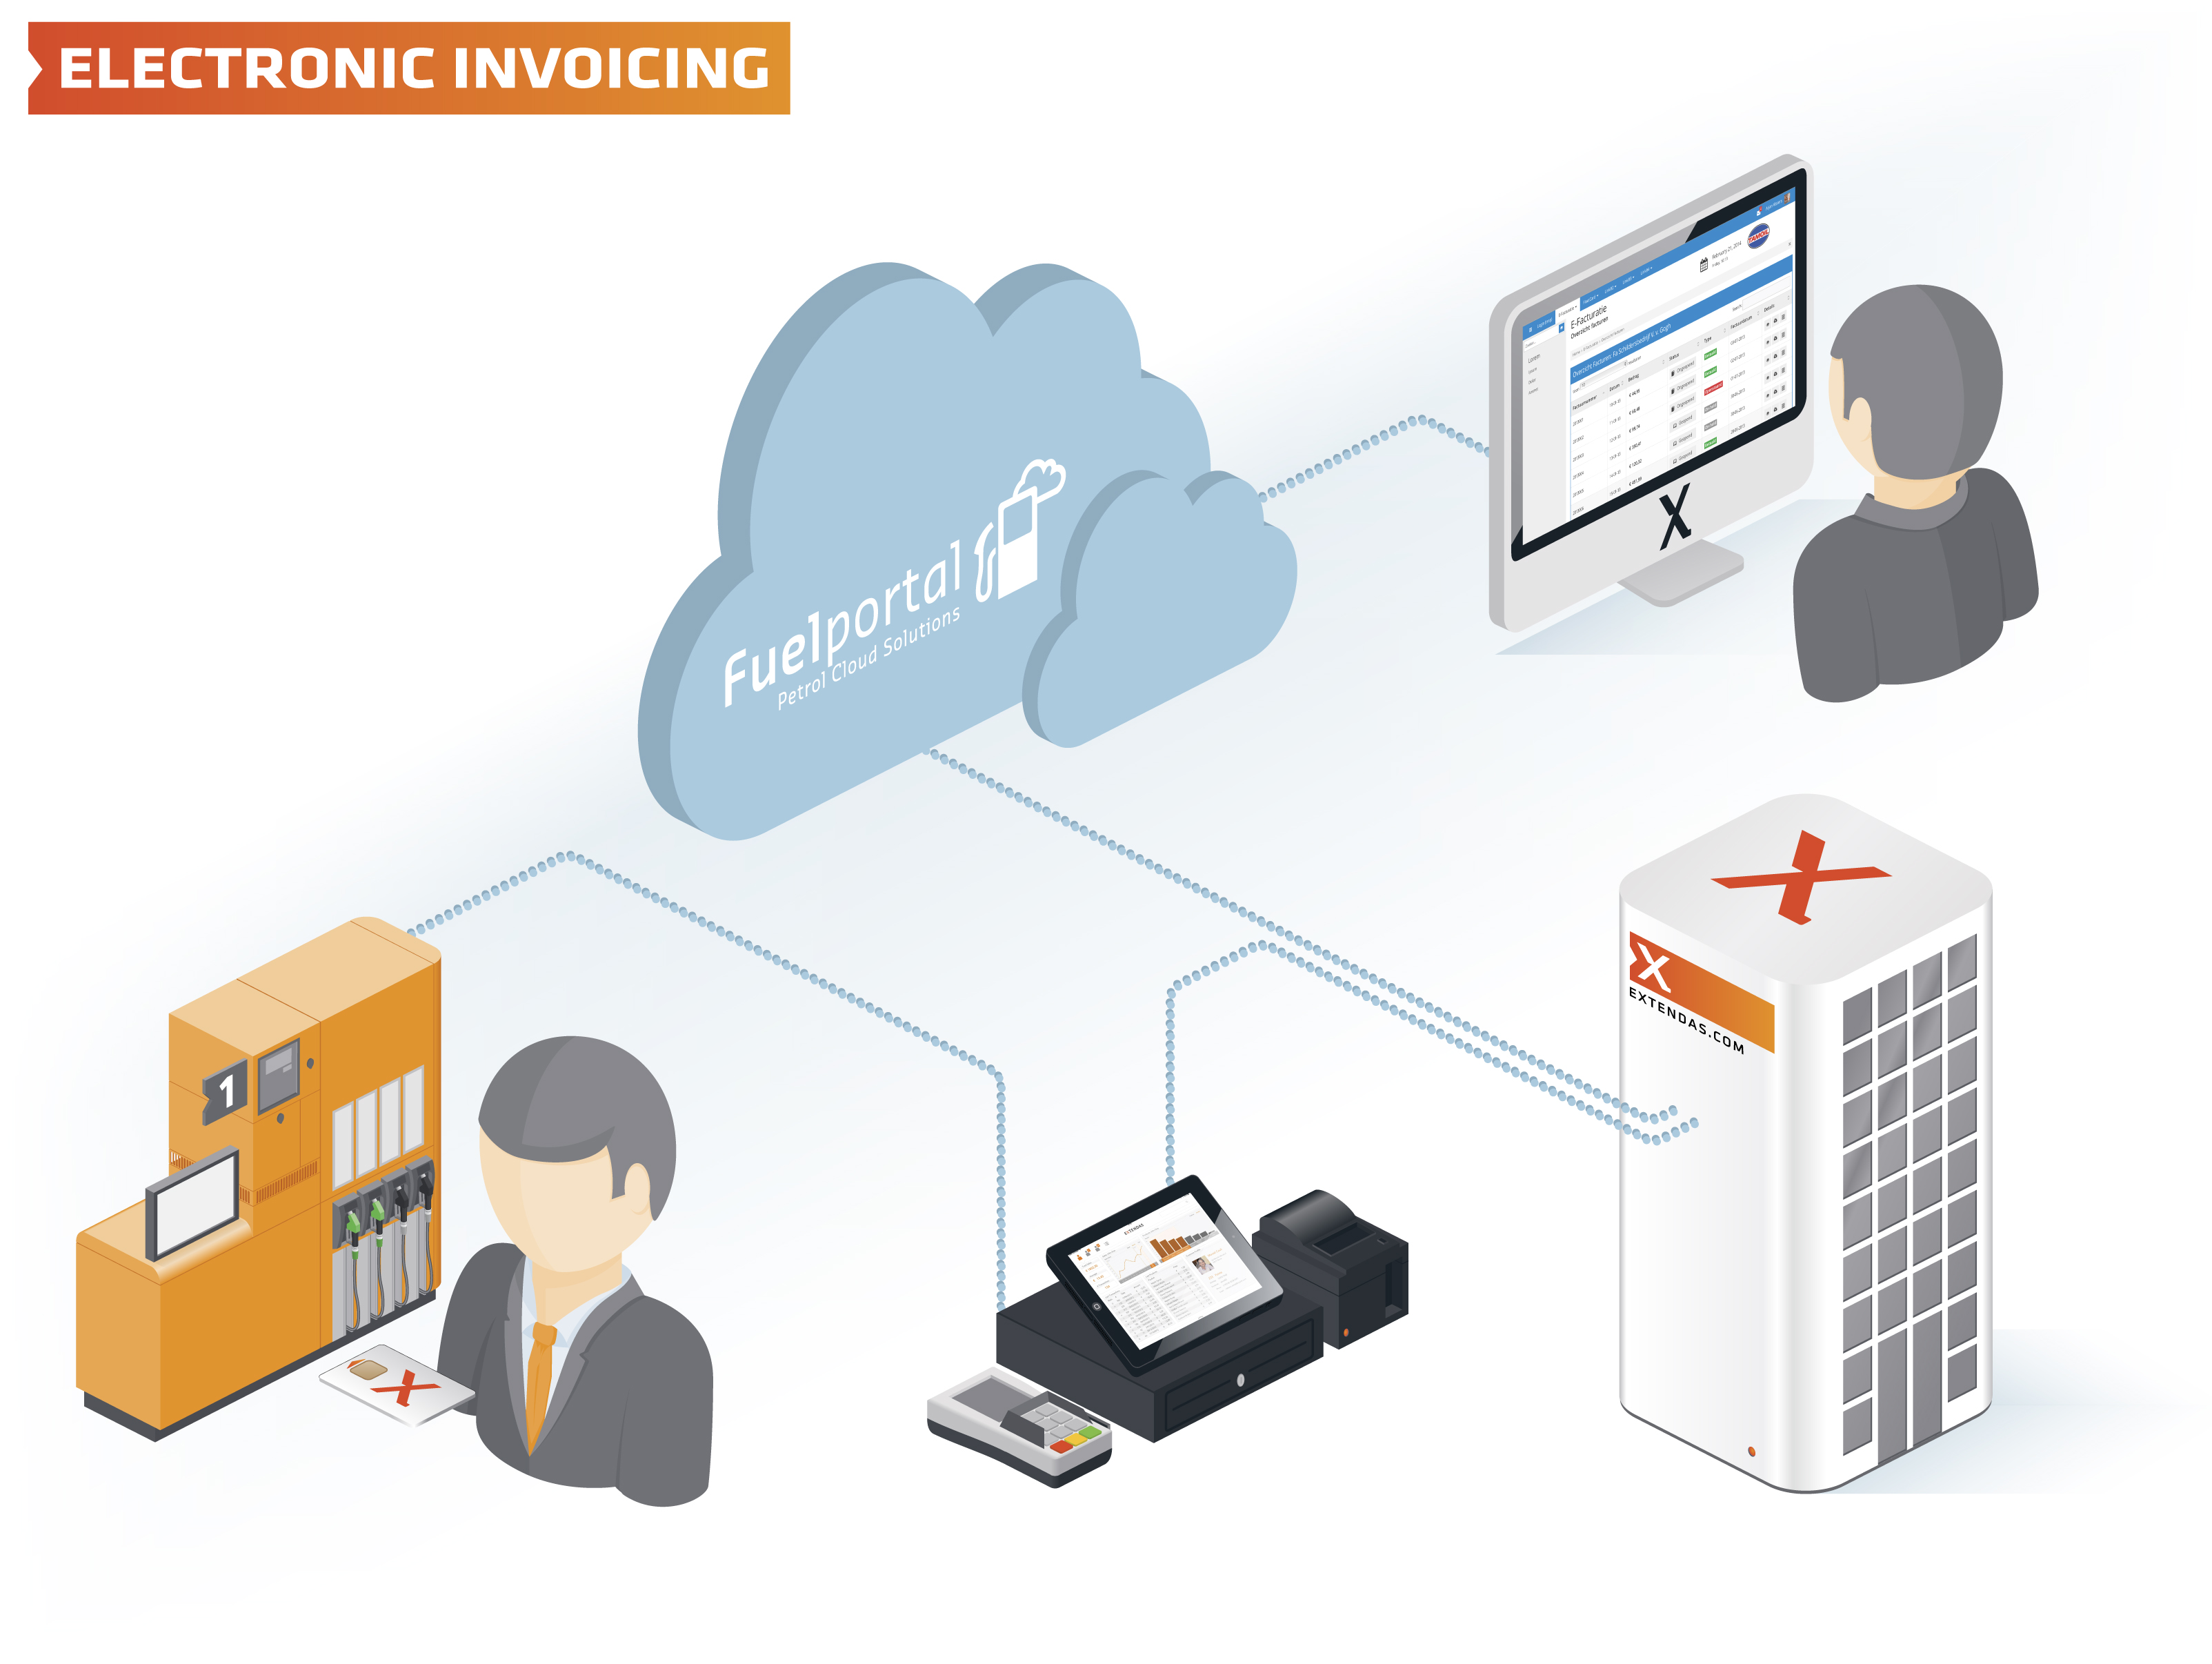 EInvoicing Extendas - What is e invoicing how to start an online store